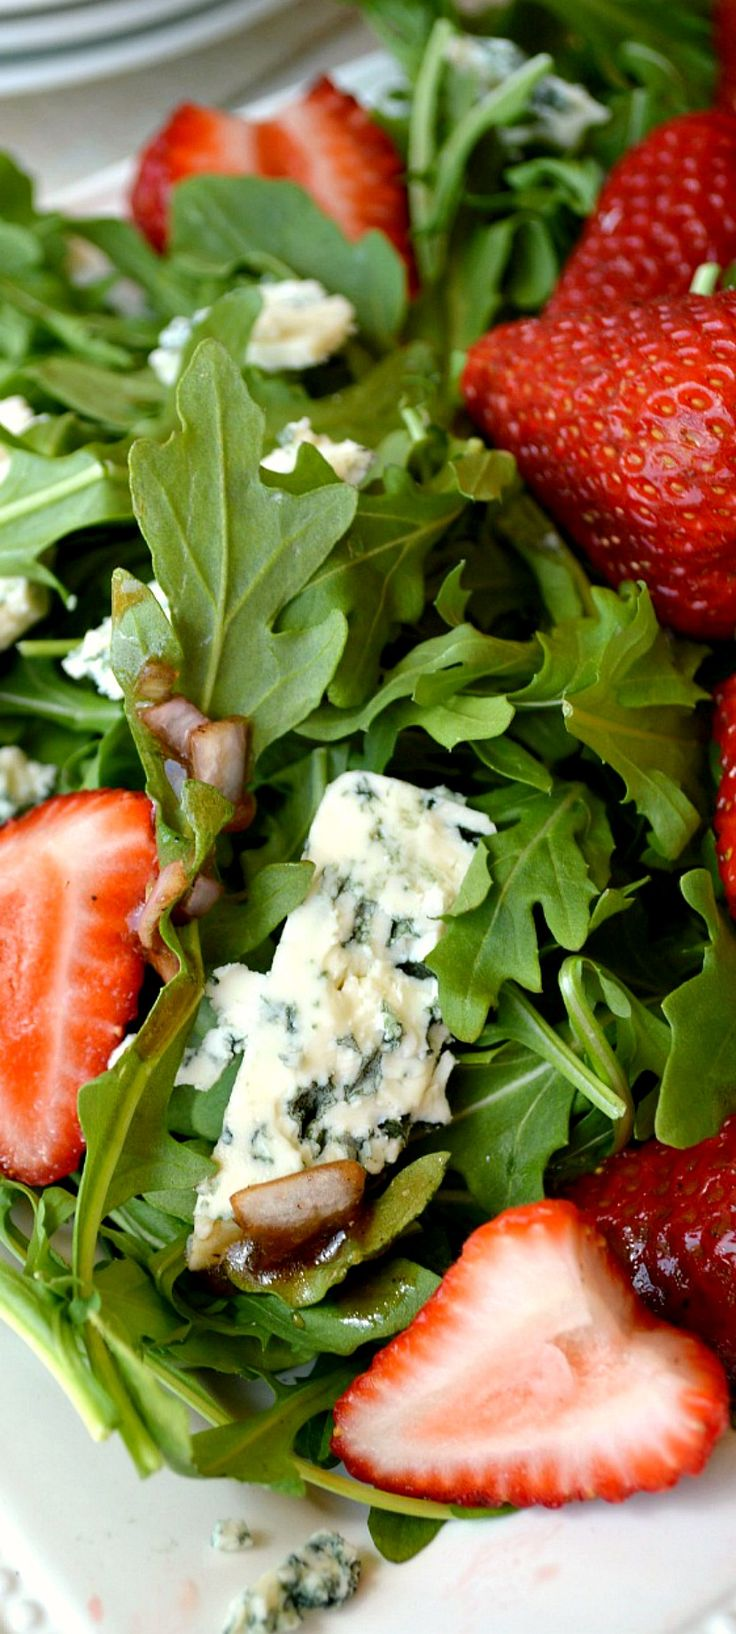 Arugula Strawberry Blue Cheese Salad with Sherry Vinaigrette. This recipe is from the famous SoCal restaurant Lemonades and it's off the charts yummy.  It's simple to make and far more delicious than the sum of it's parts! The Sherry vinaigrette is one of the best salad dressings I've ever had!